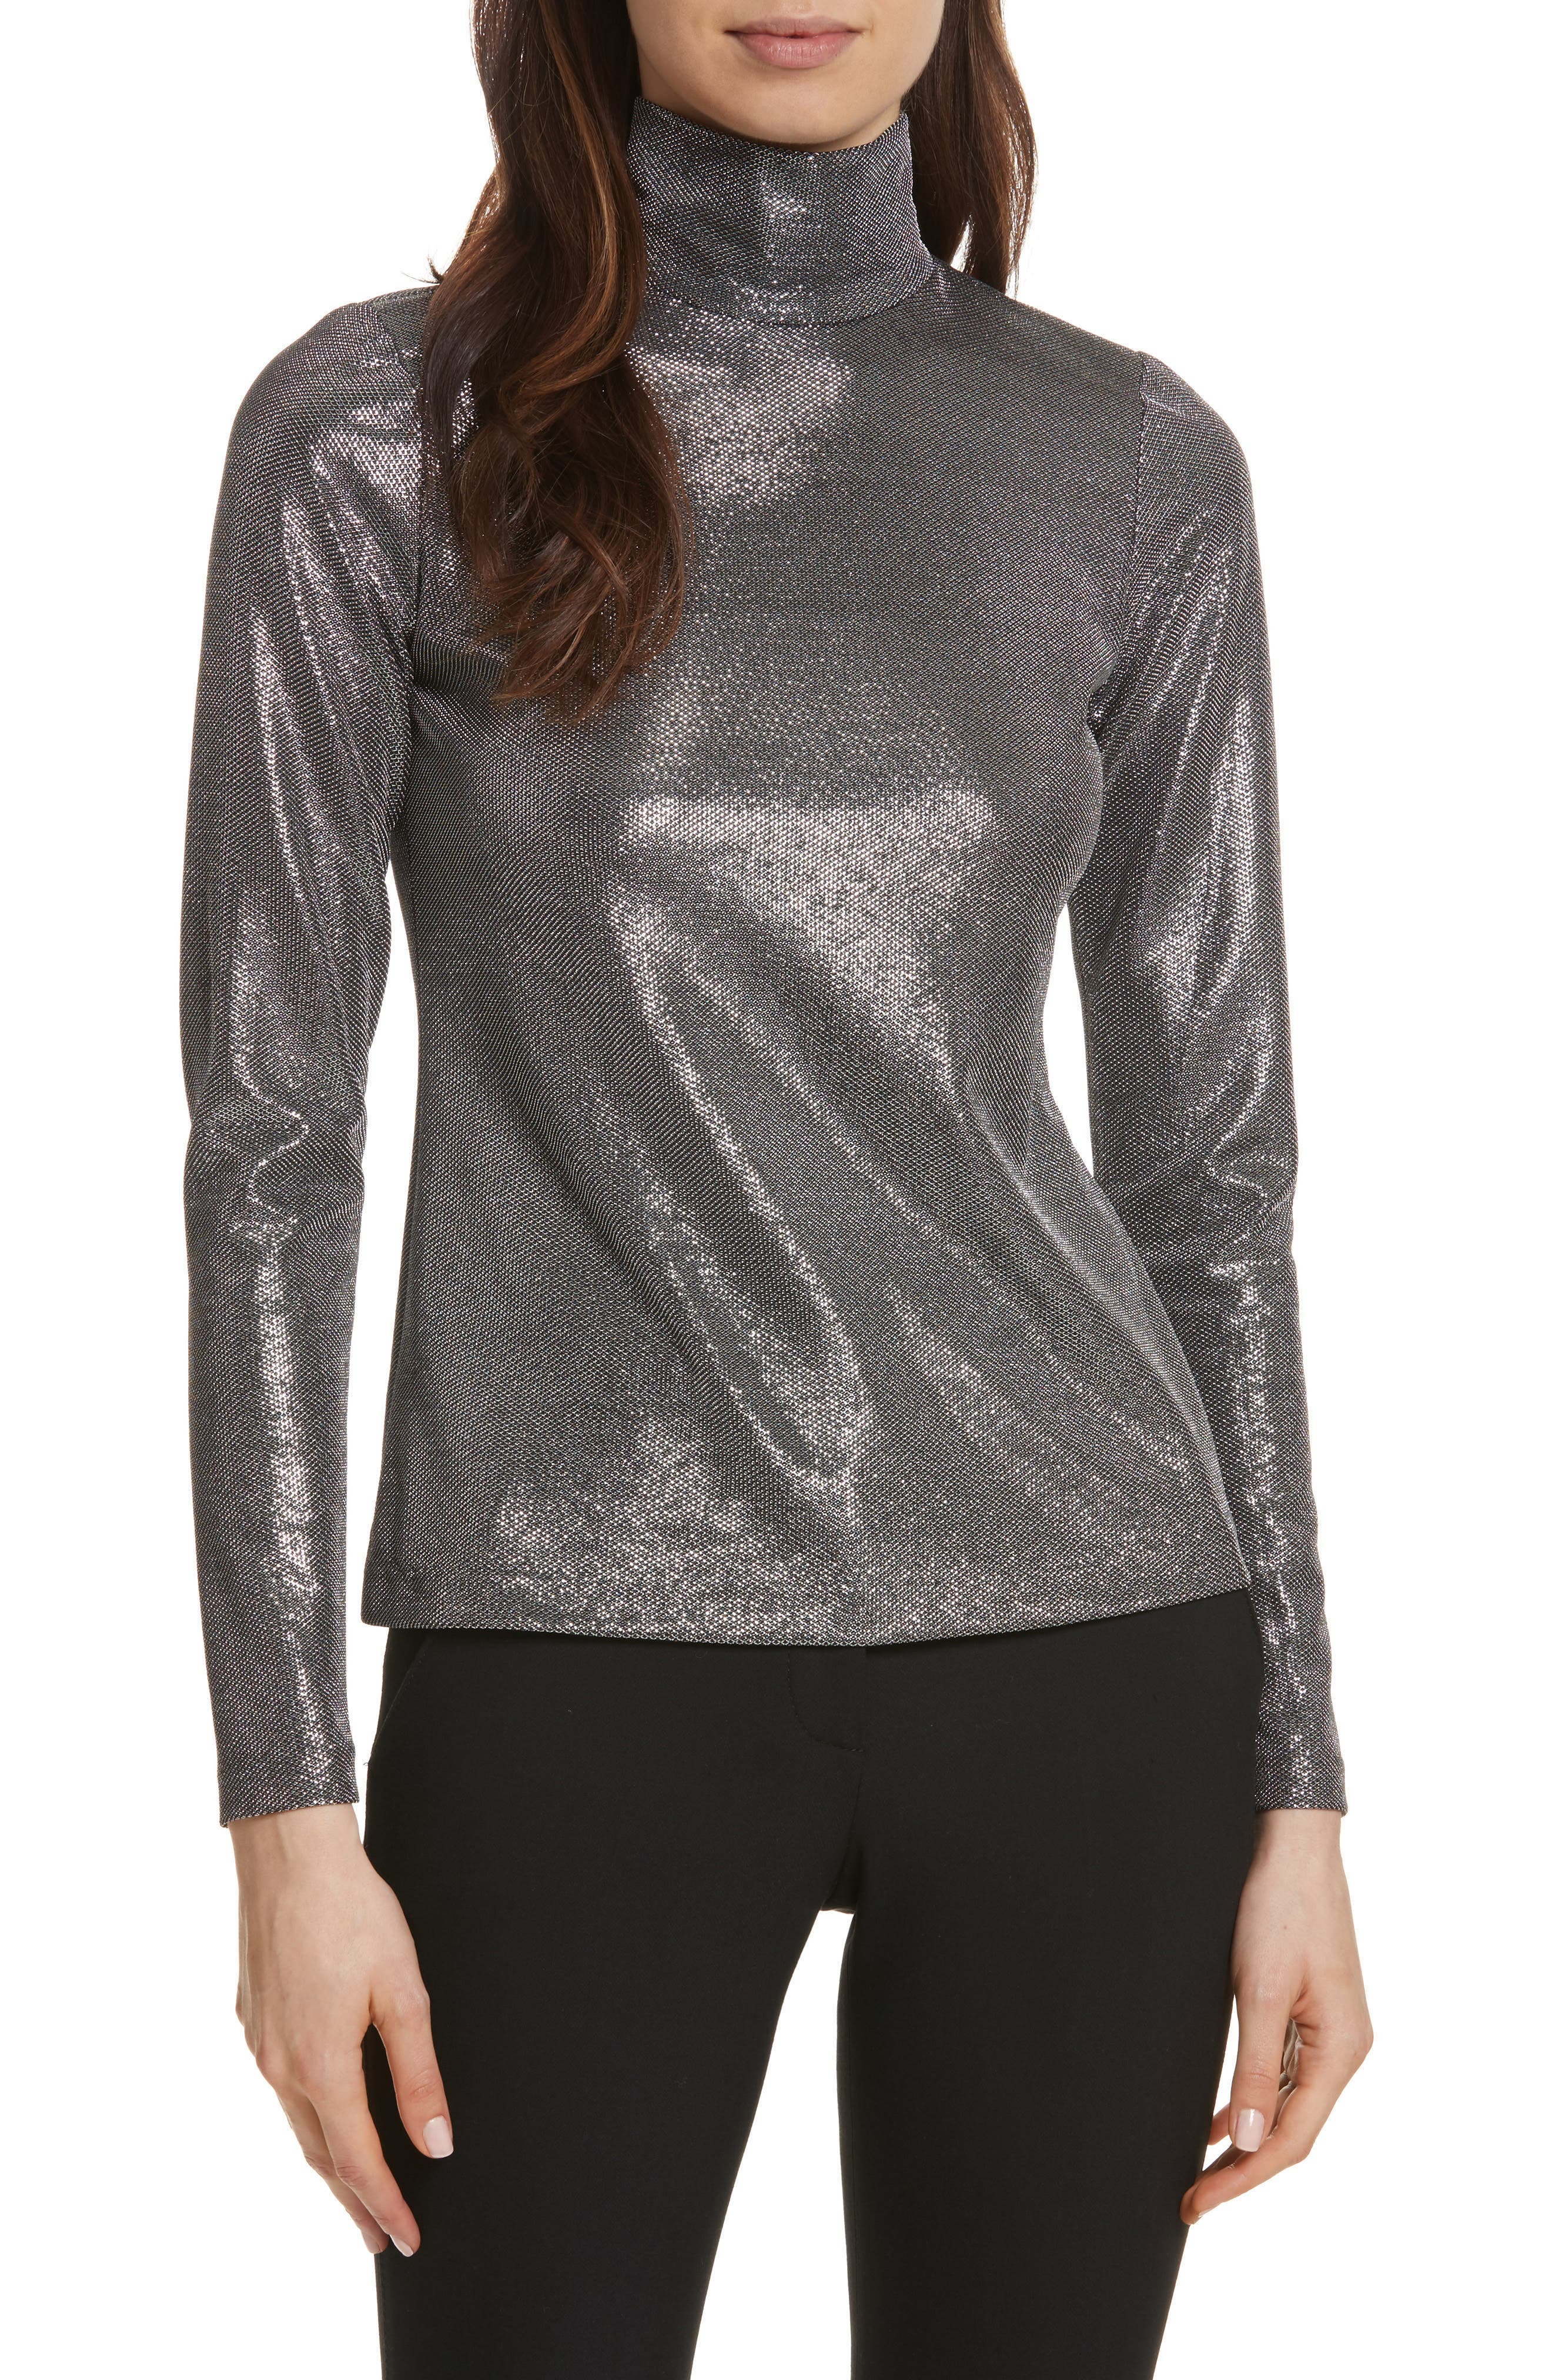 Silver Turtleneck Top,                         Main,                         color, Antique Silver